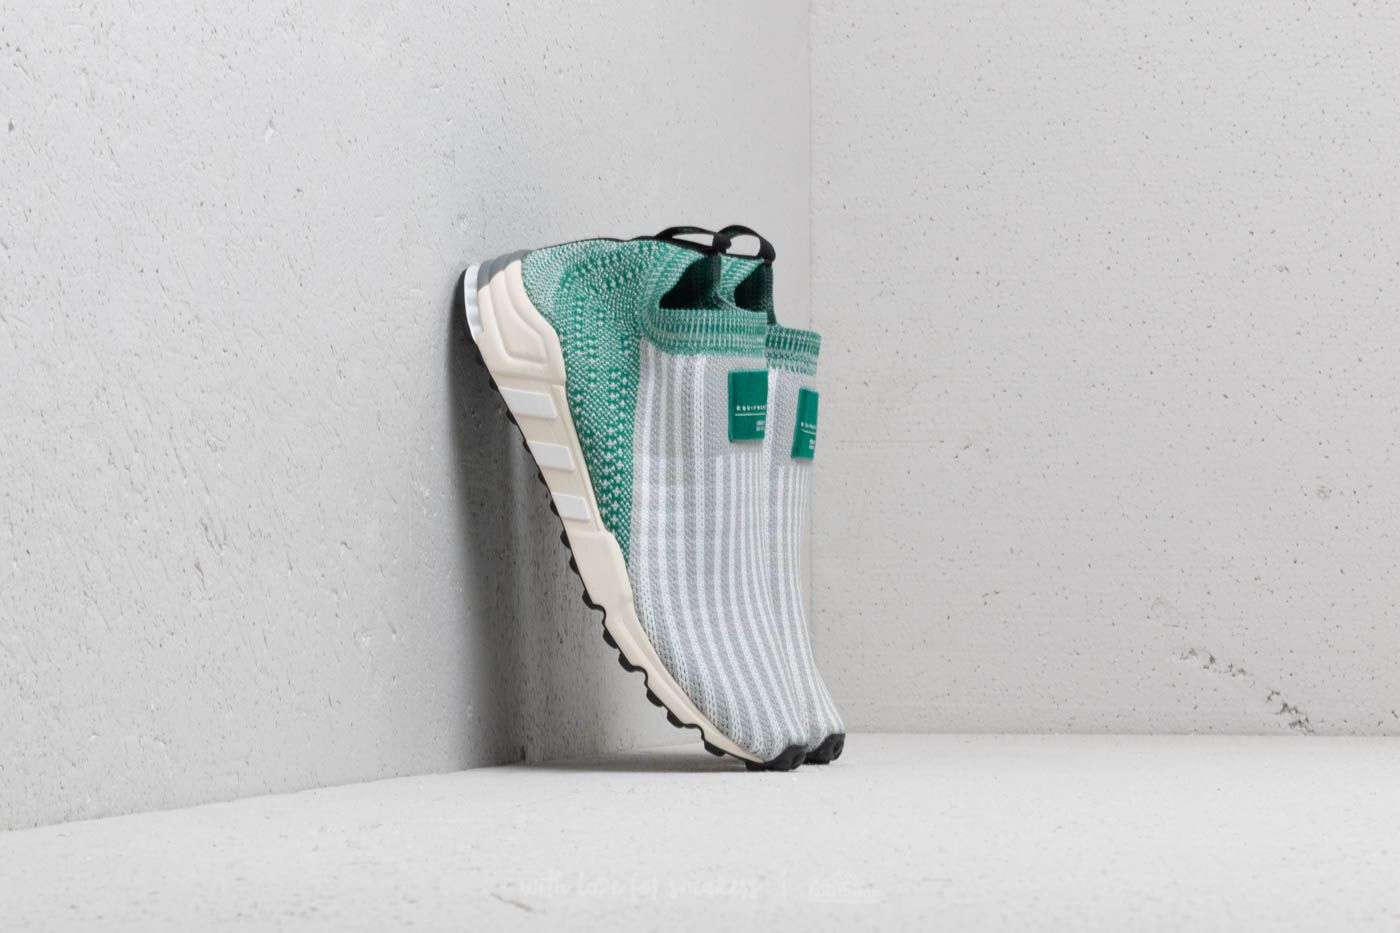 c5923be07e0d adidas EQT Support SK Primeknit Grey Two  Ftw White  Sub Green ...